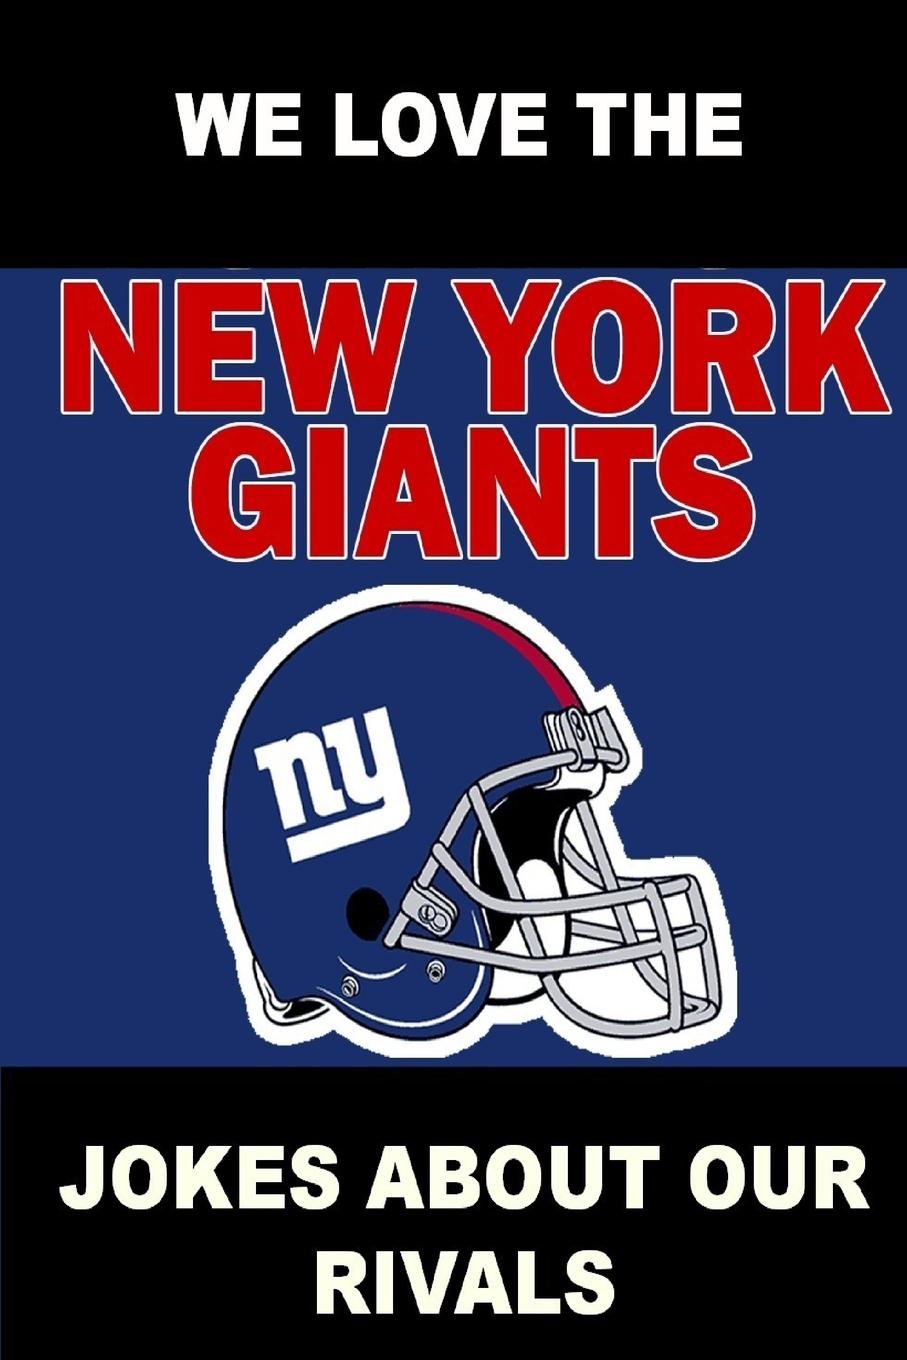 Alex Wimpy We Love the New York Giants - Jokes About Our Rivals on the shoulders of giants